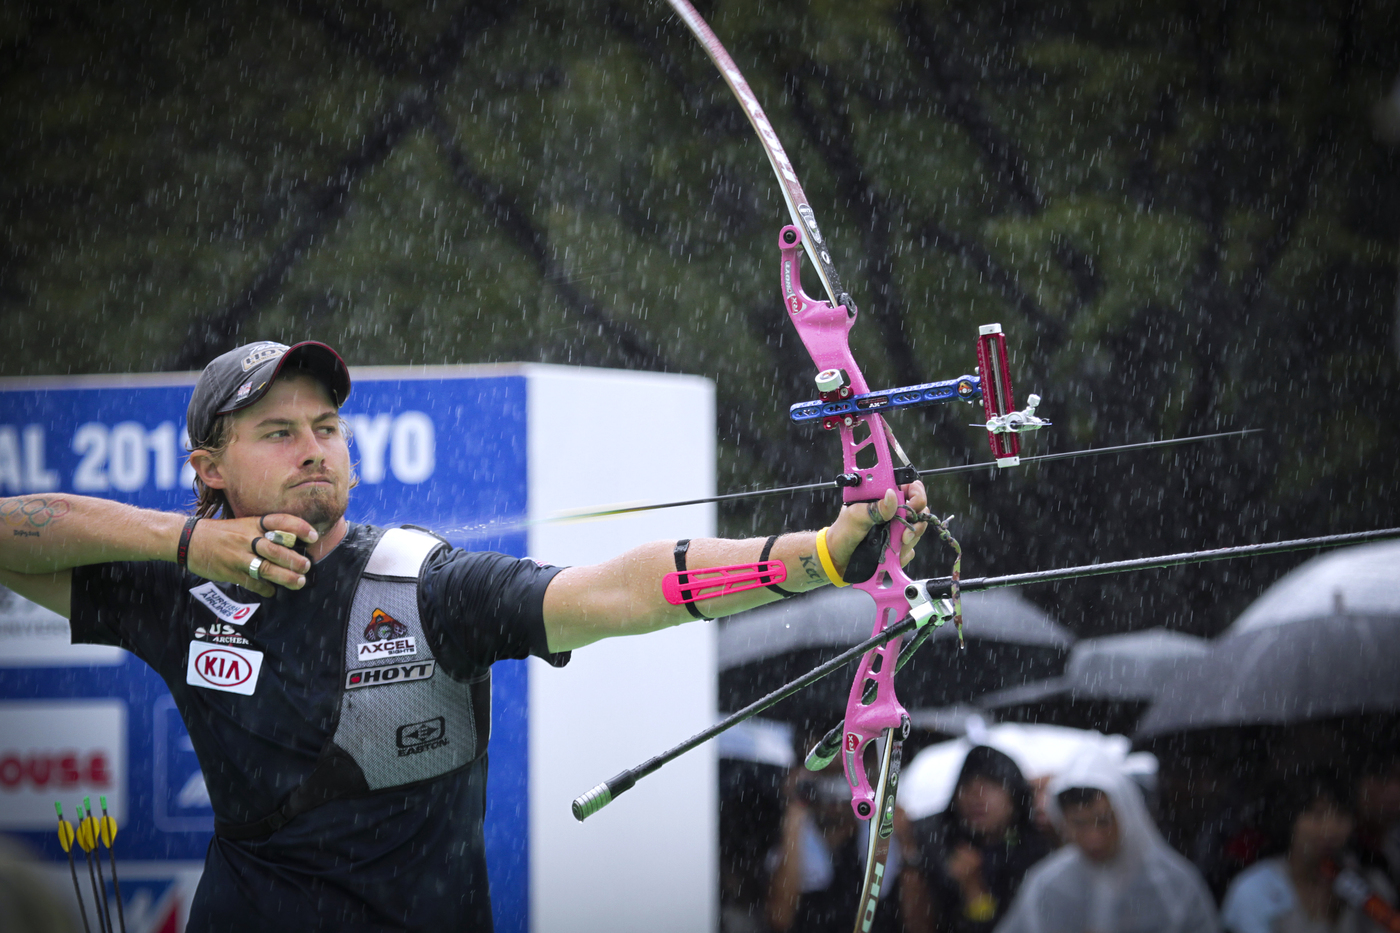 Longines Archery Event: The winners of the 2012 Longines Prize for Precision for archery 3